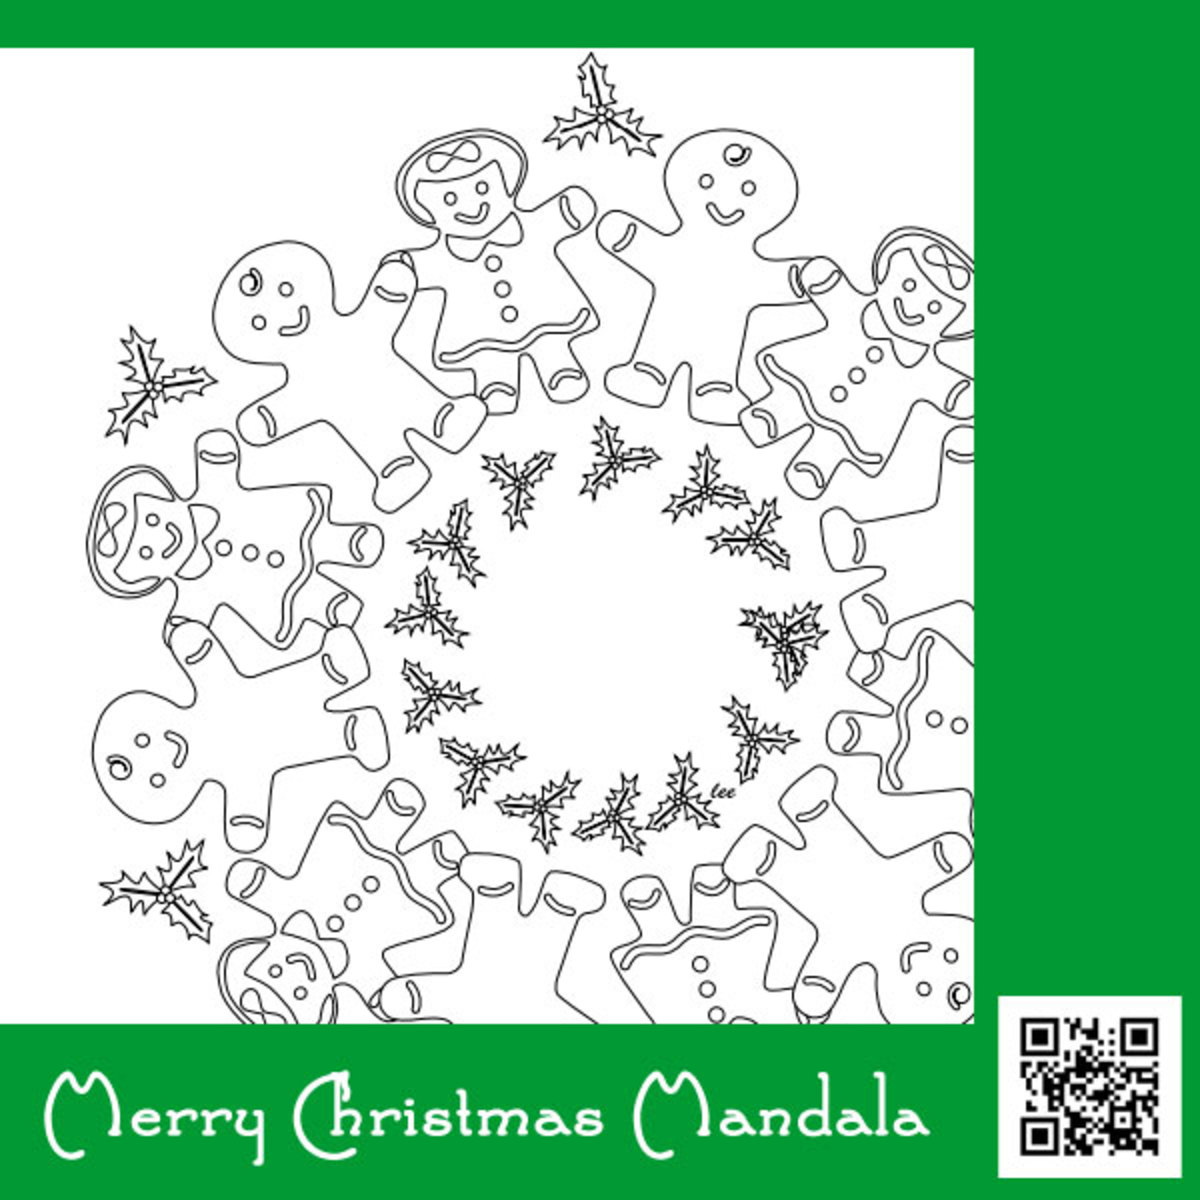 Merry Christmas Mandala, gingerbread cookies wreath coloring page